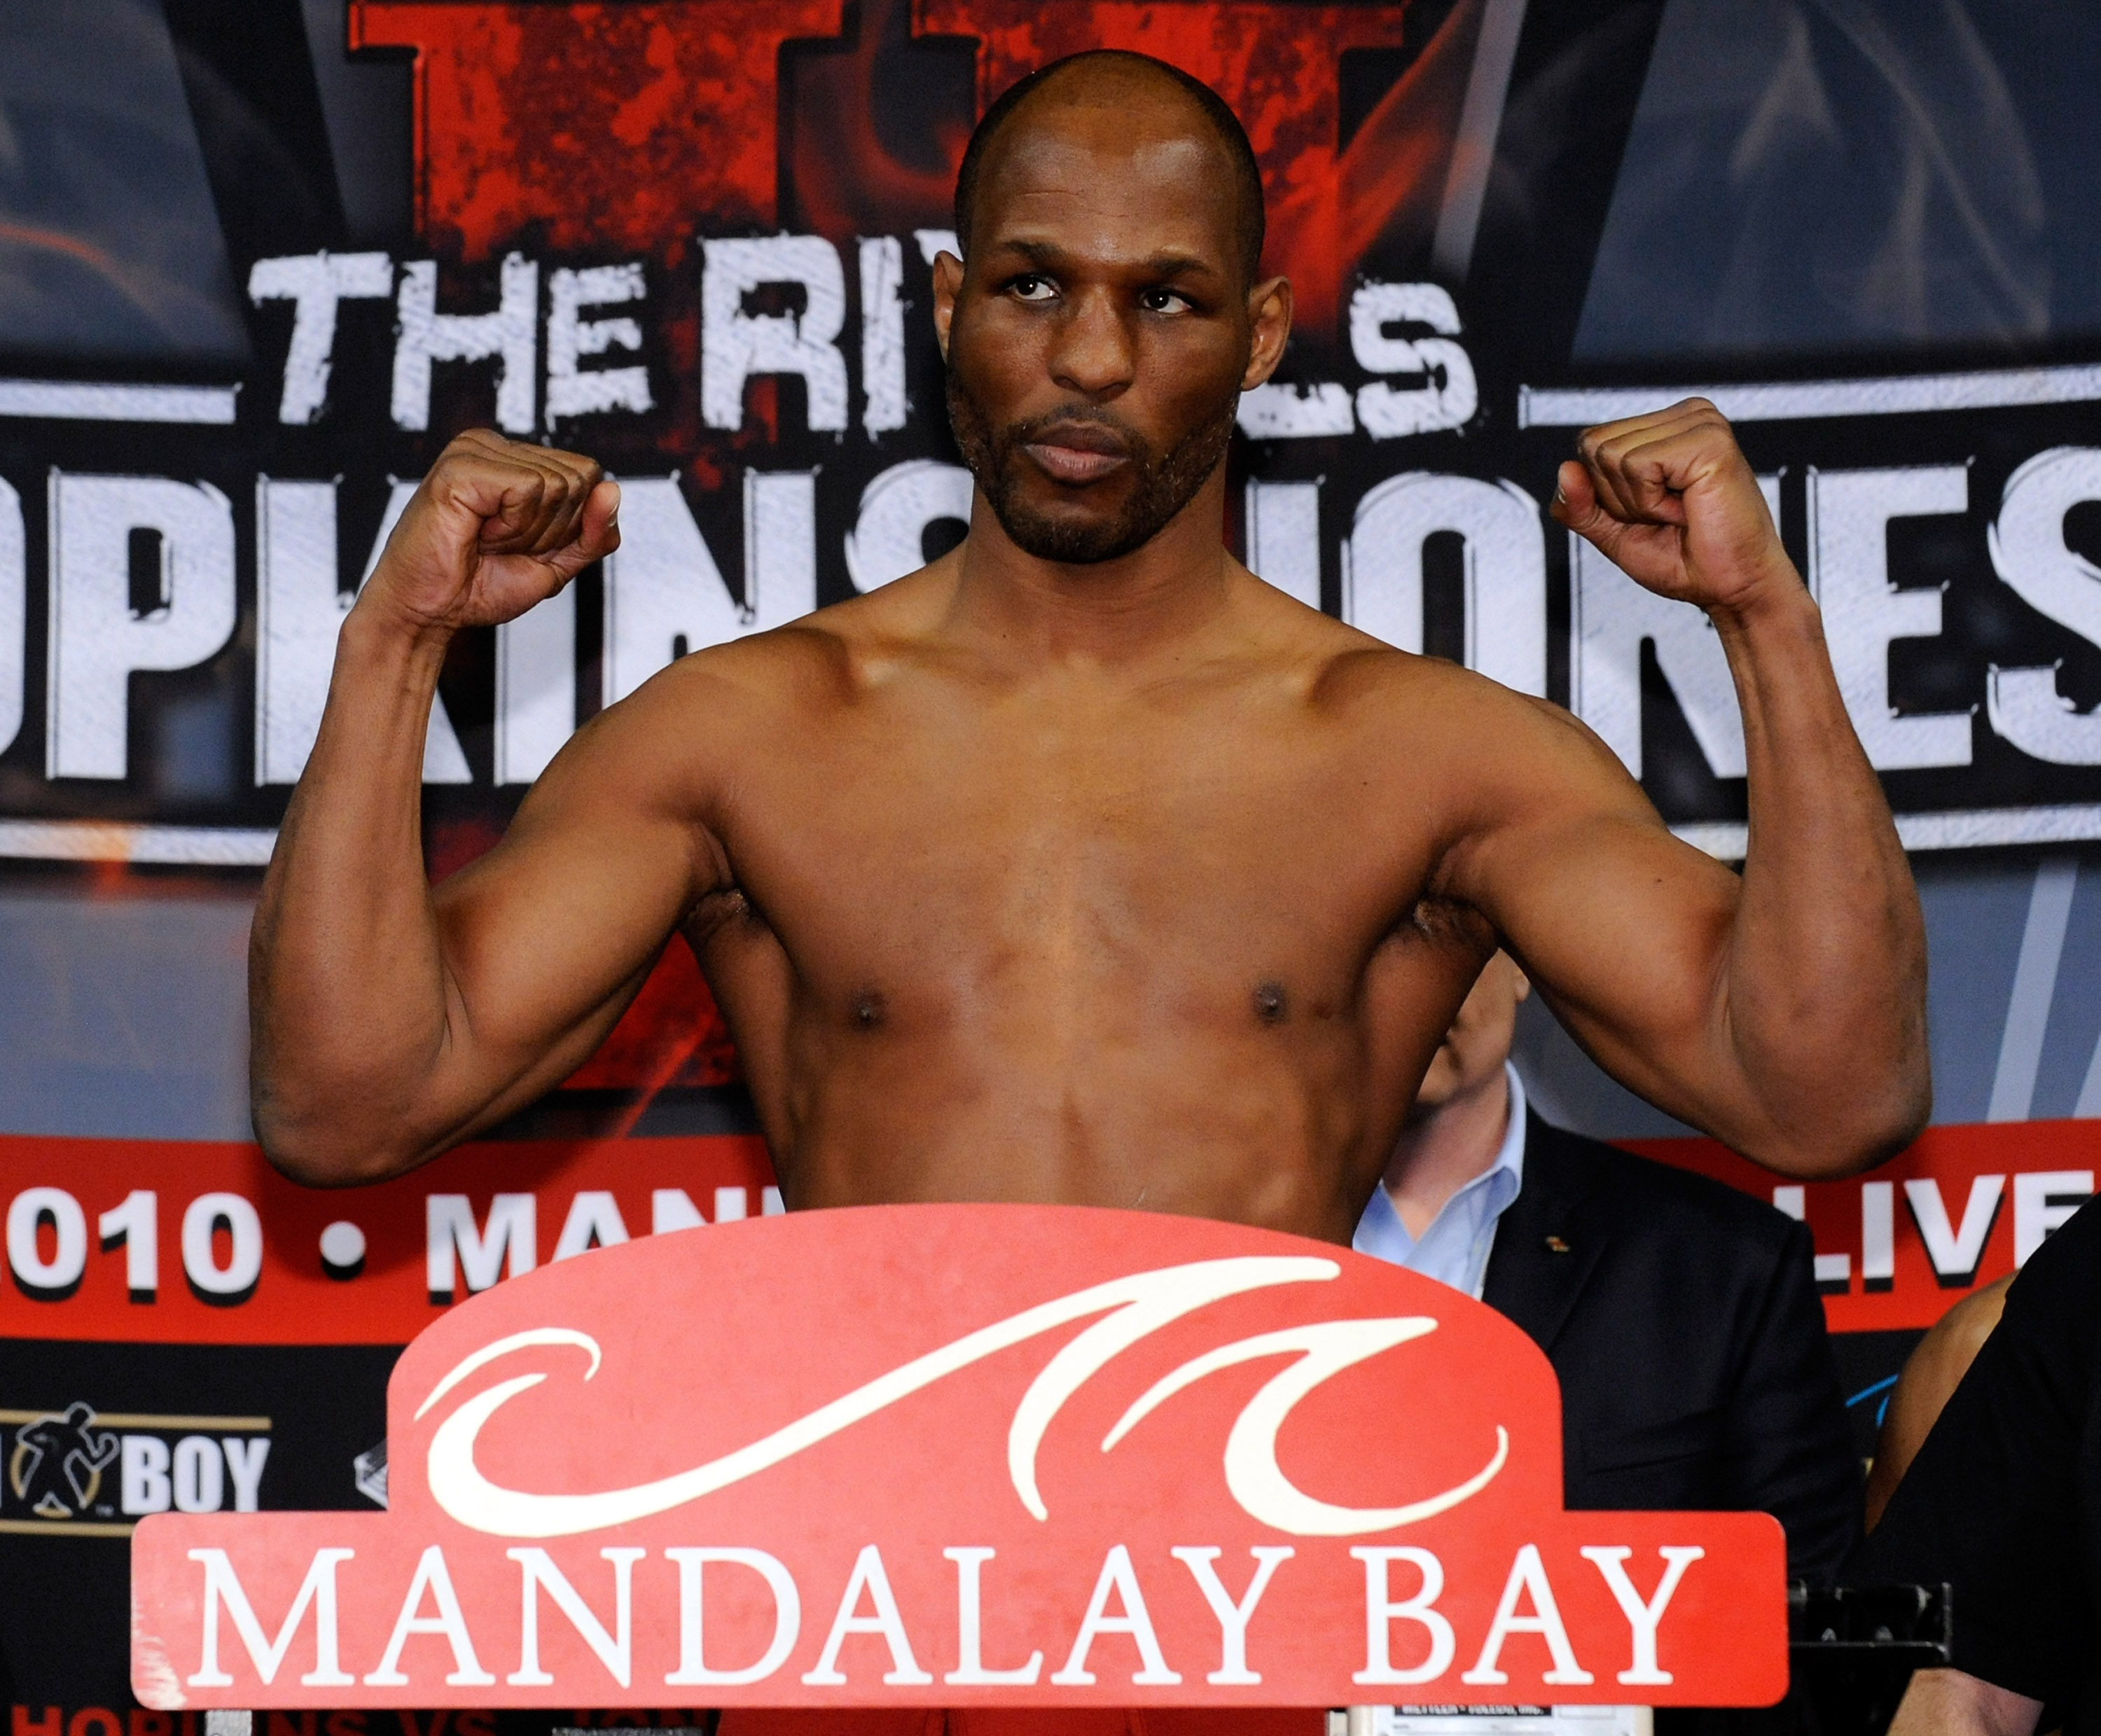 LAS VEGAS - APRIL 02:  Boxer Bernard Hopkins poses on the scale during the official weigh-in for his bout against Roy Jones Jr. at the Mandalay Bay Events Center April 2, 2010 in Las Vegas, Nevada. The two will meet in a light heavyweight bout on April 3